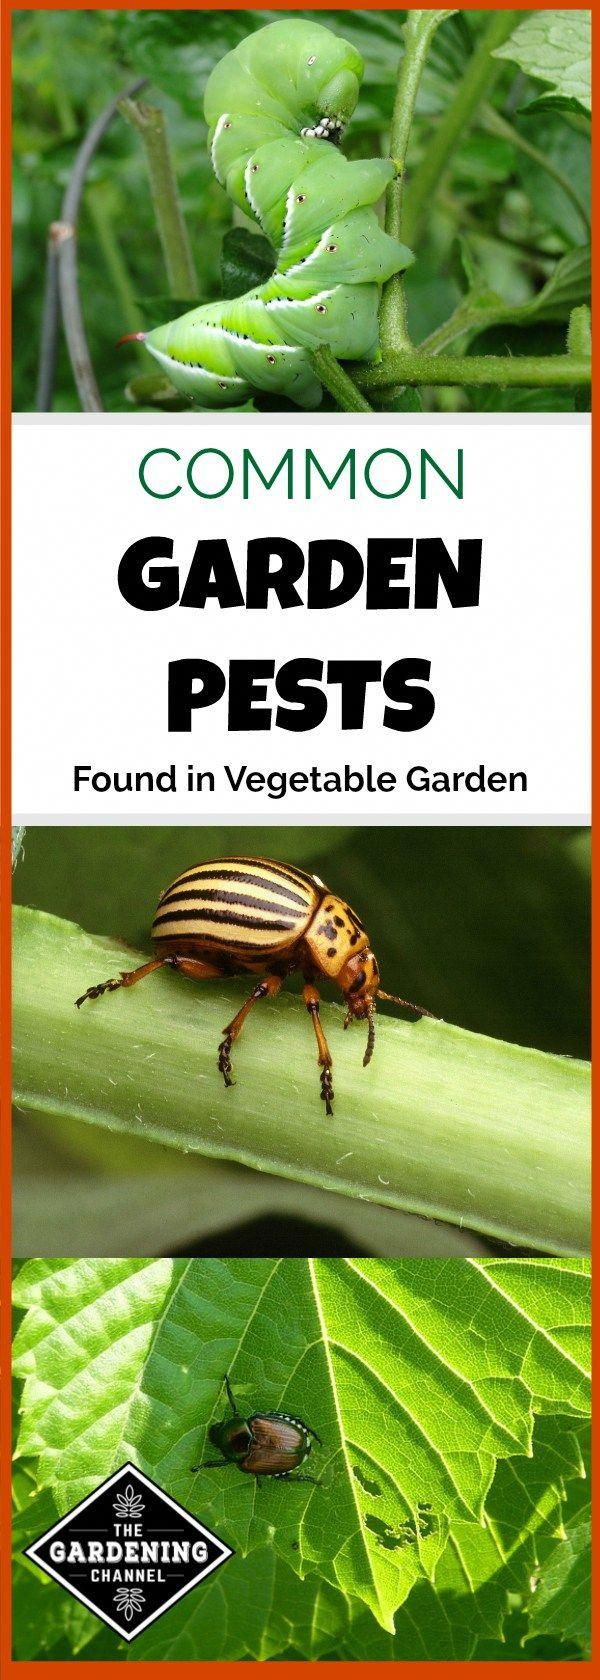 Common Garden Pests Found in the Vegetable Garden Garden